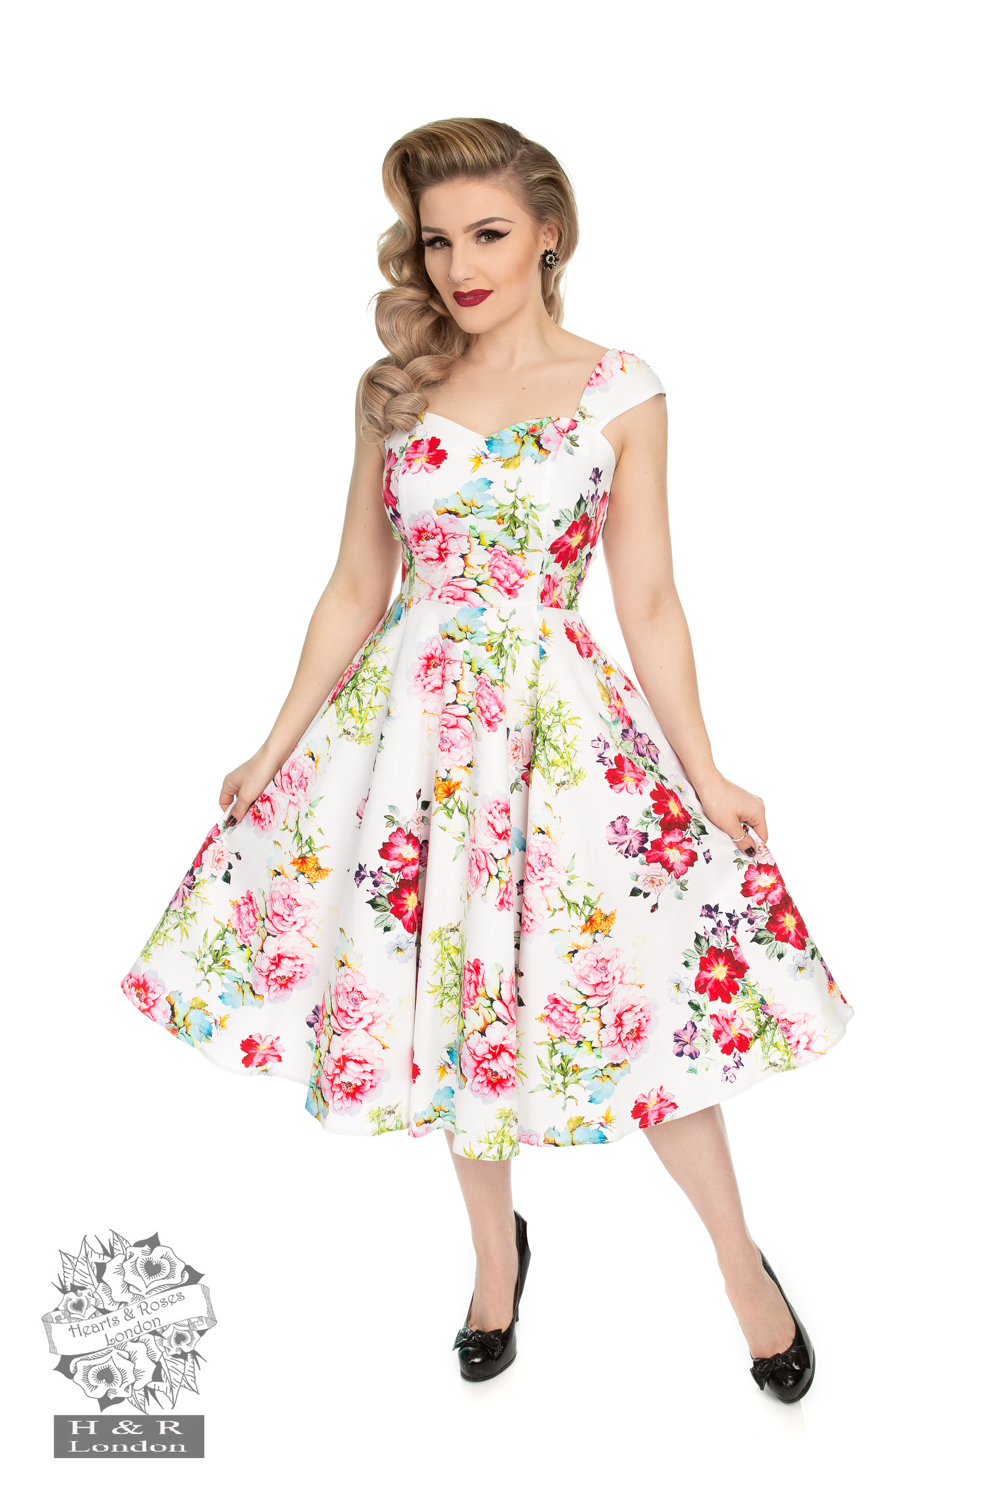 304c61e94c4 Swing Dresses - Hearts & Roses London